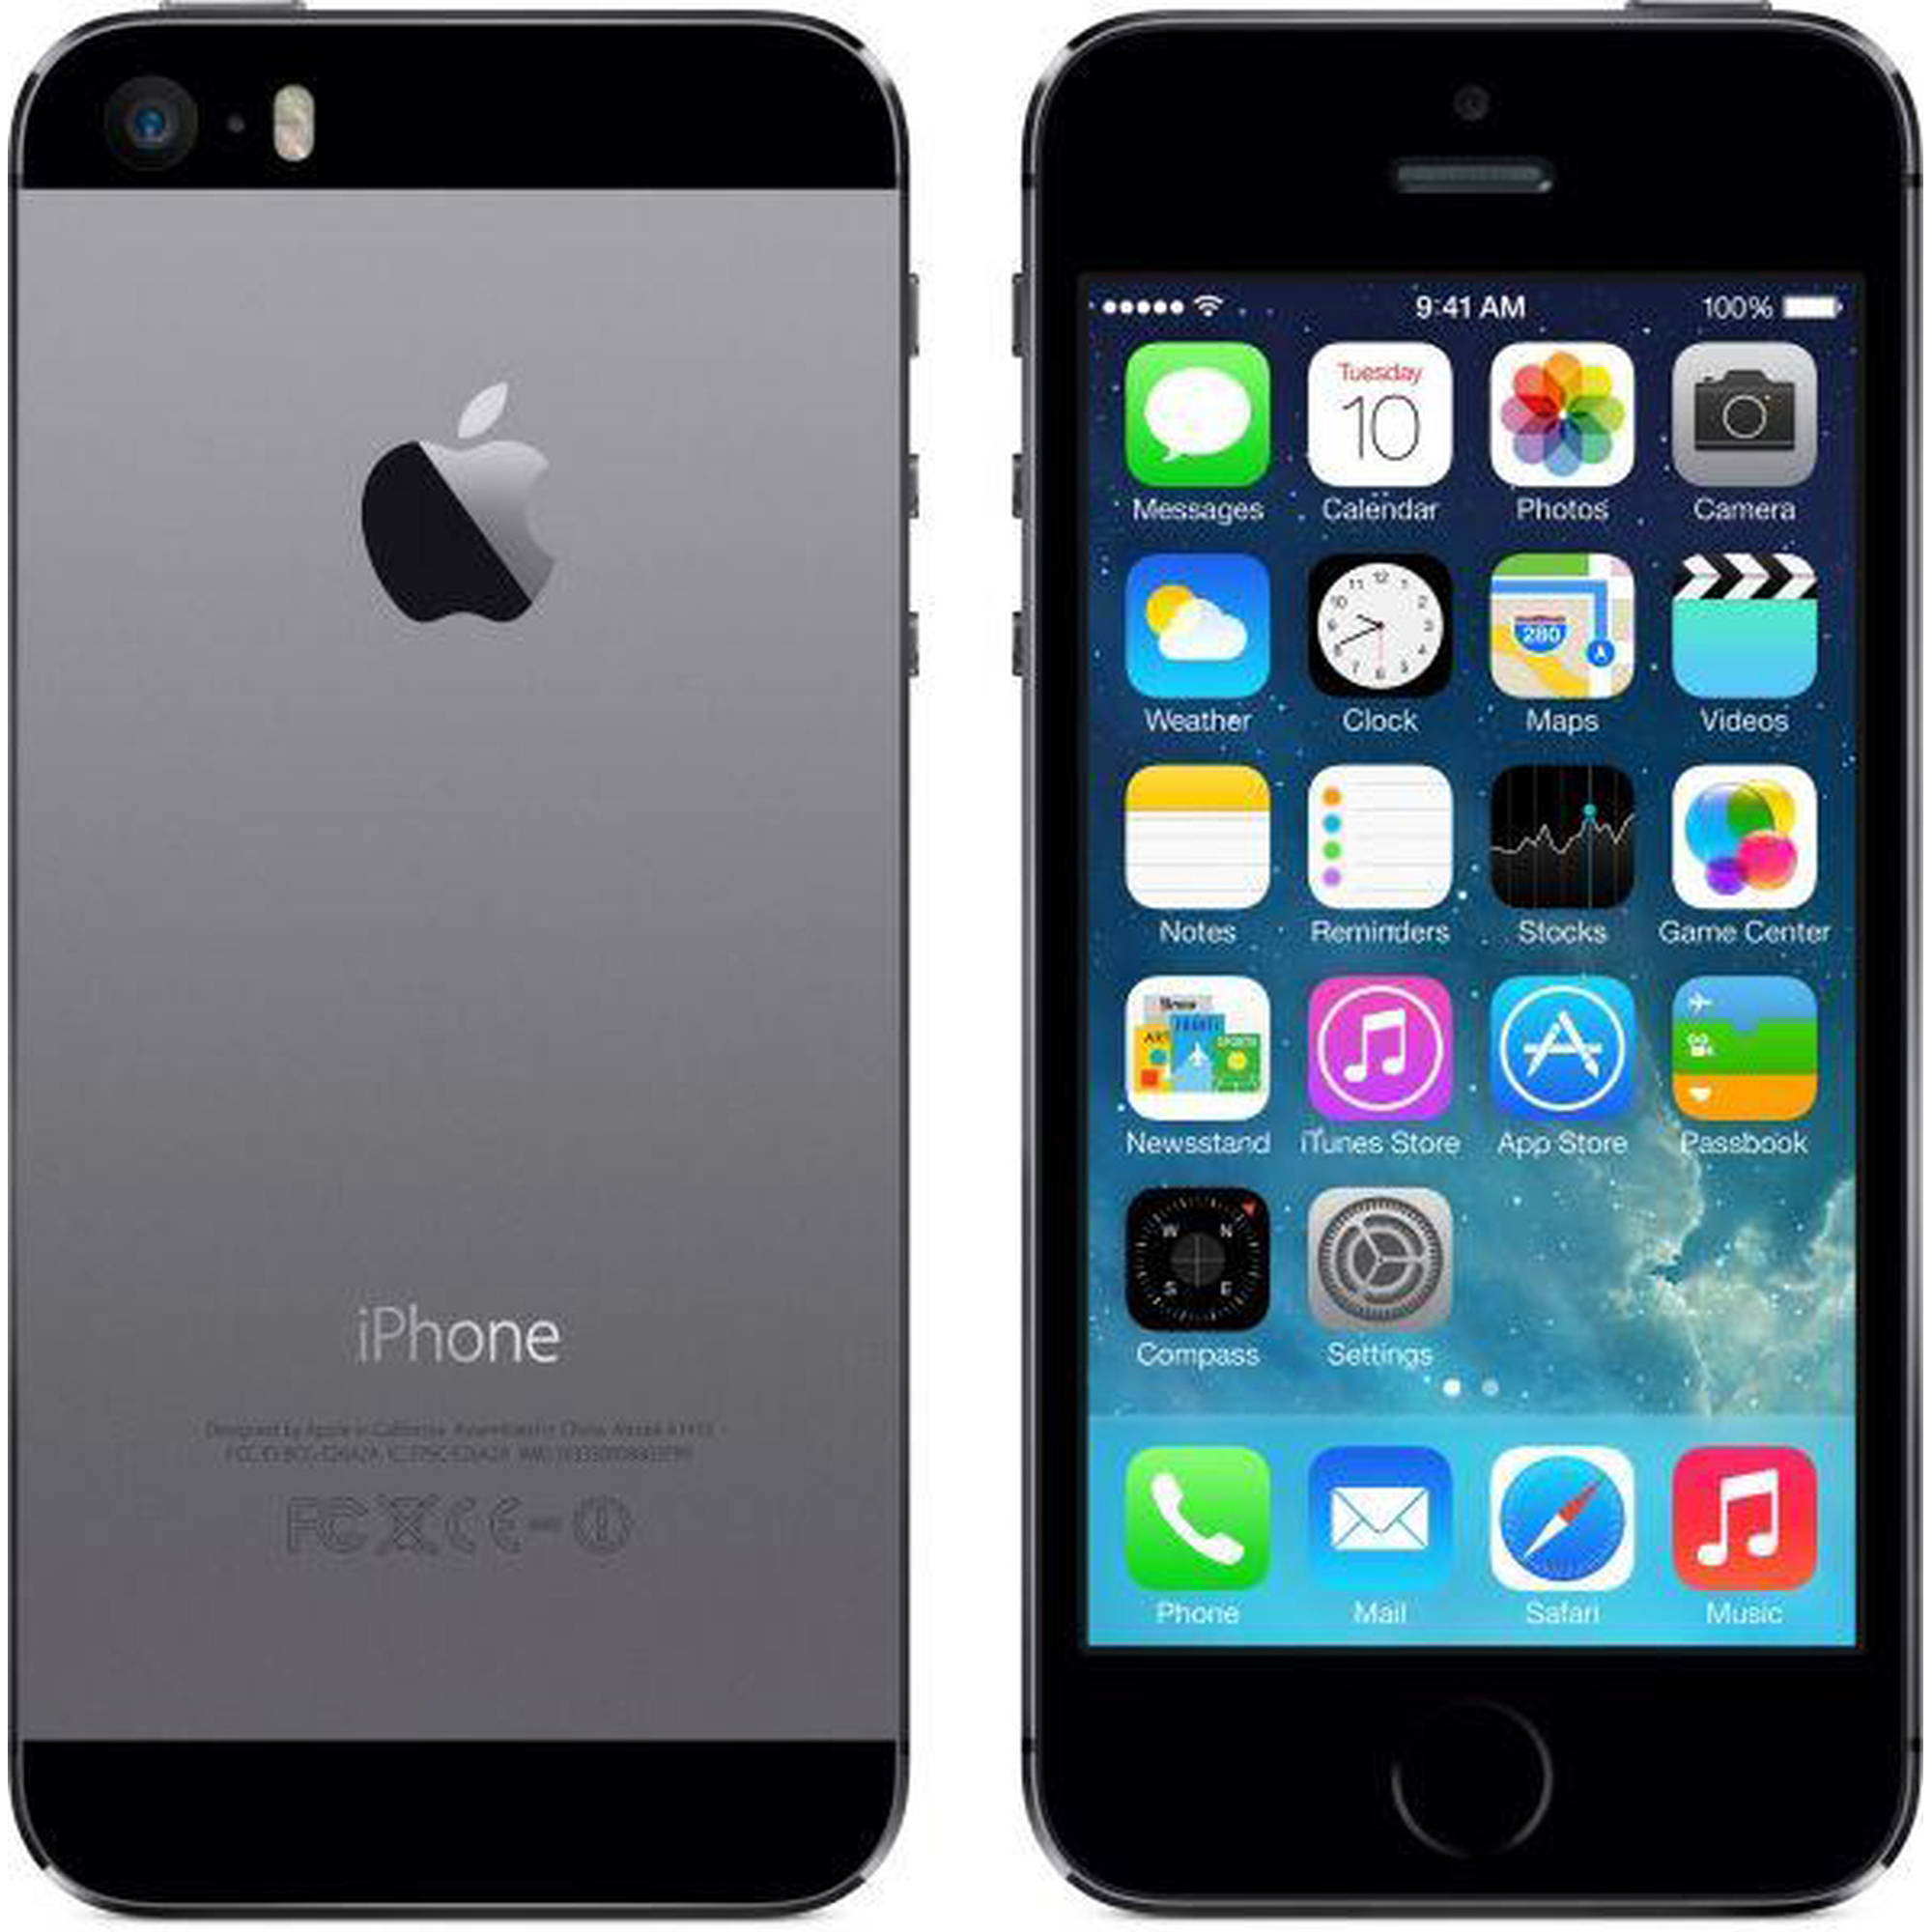 Grade-B Refurbished Apple Iphone 5S 16GB GSM Unlocked IOS Smartphone - Space